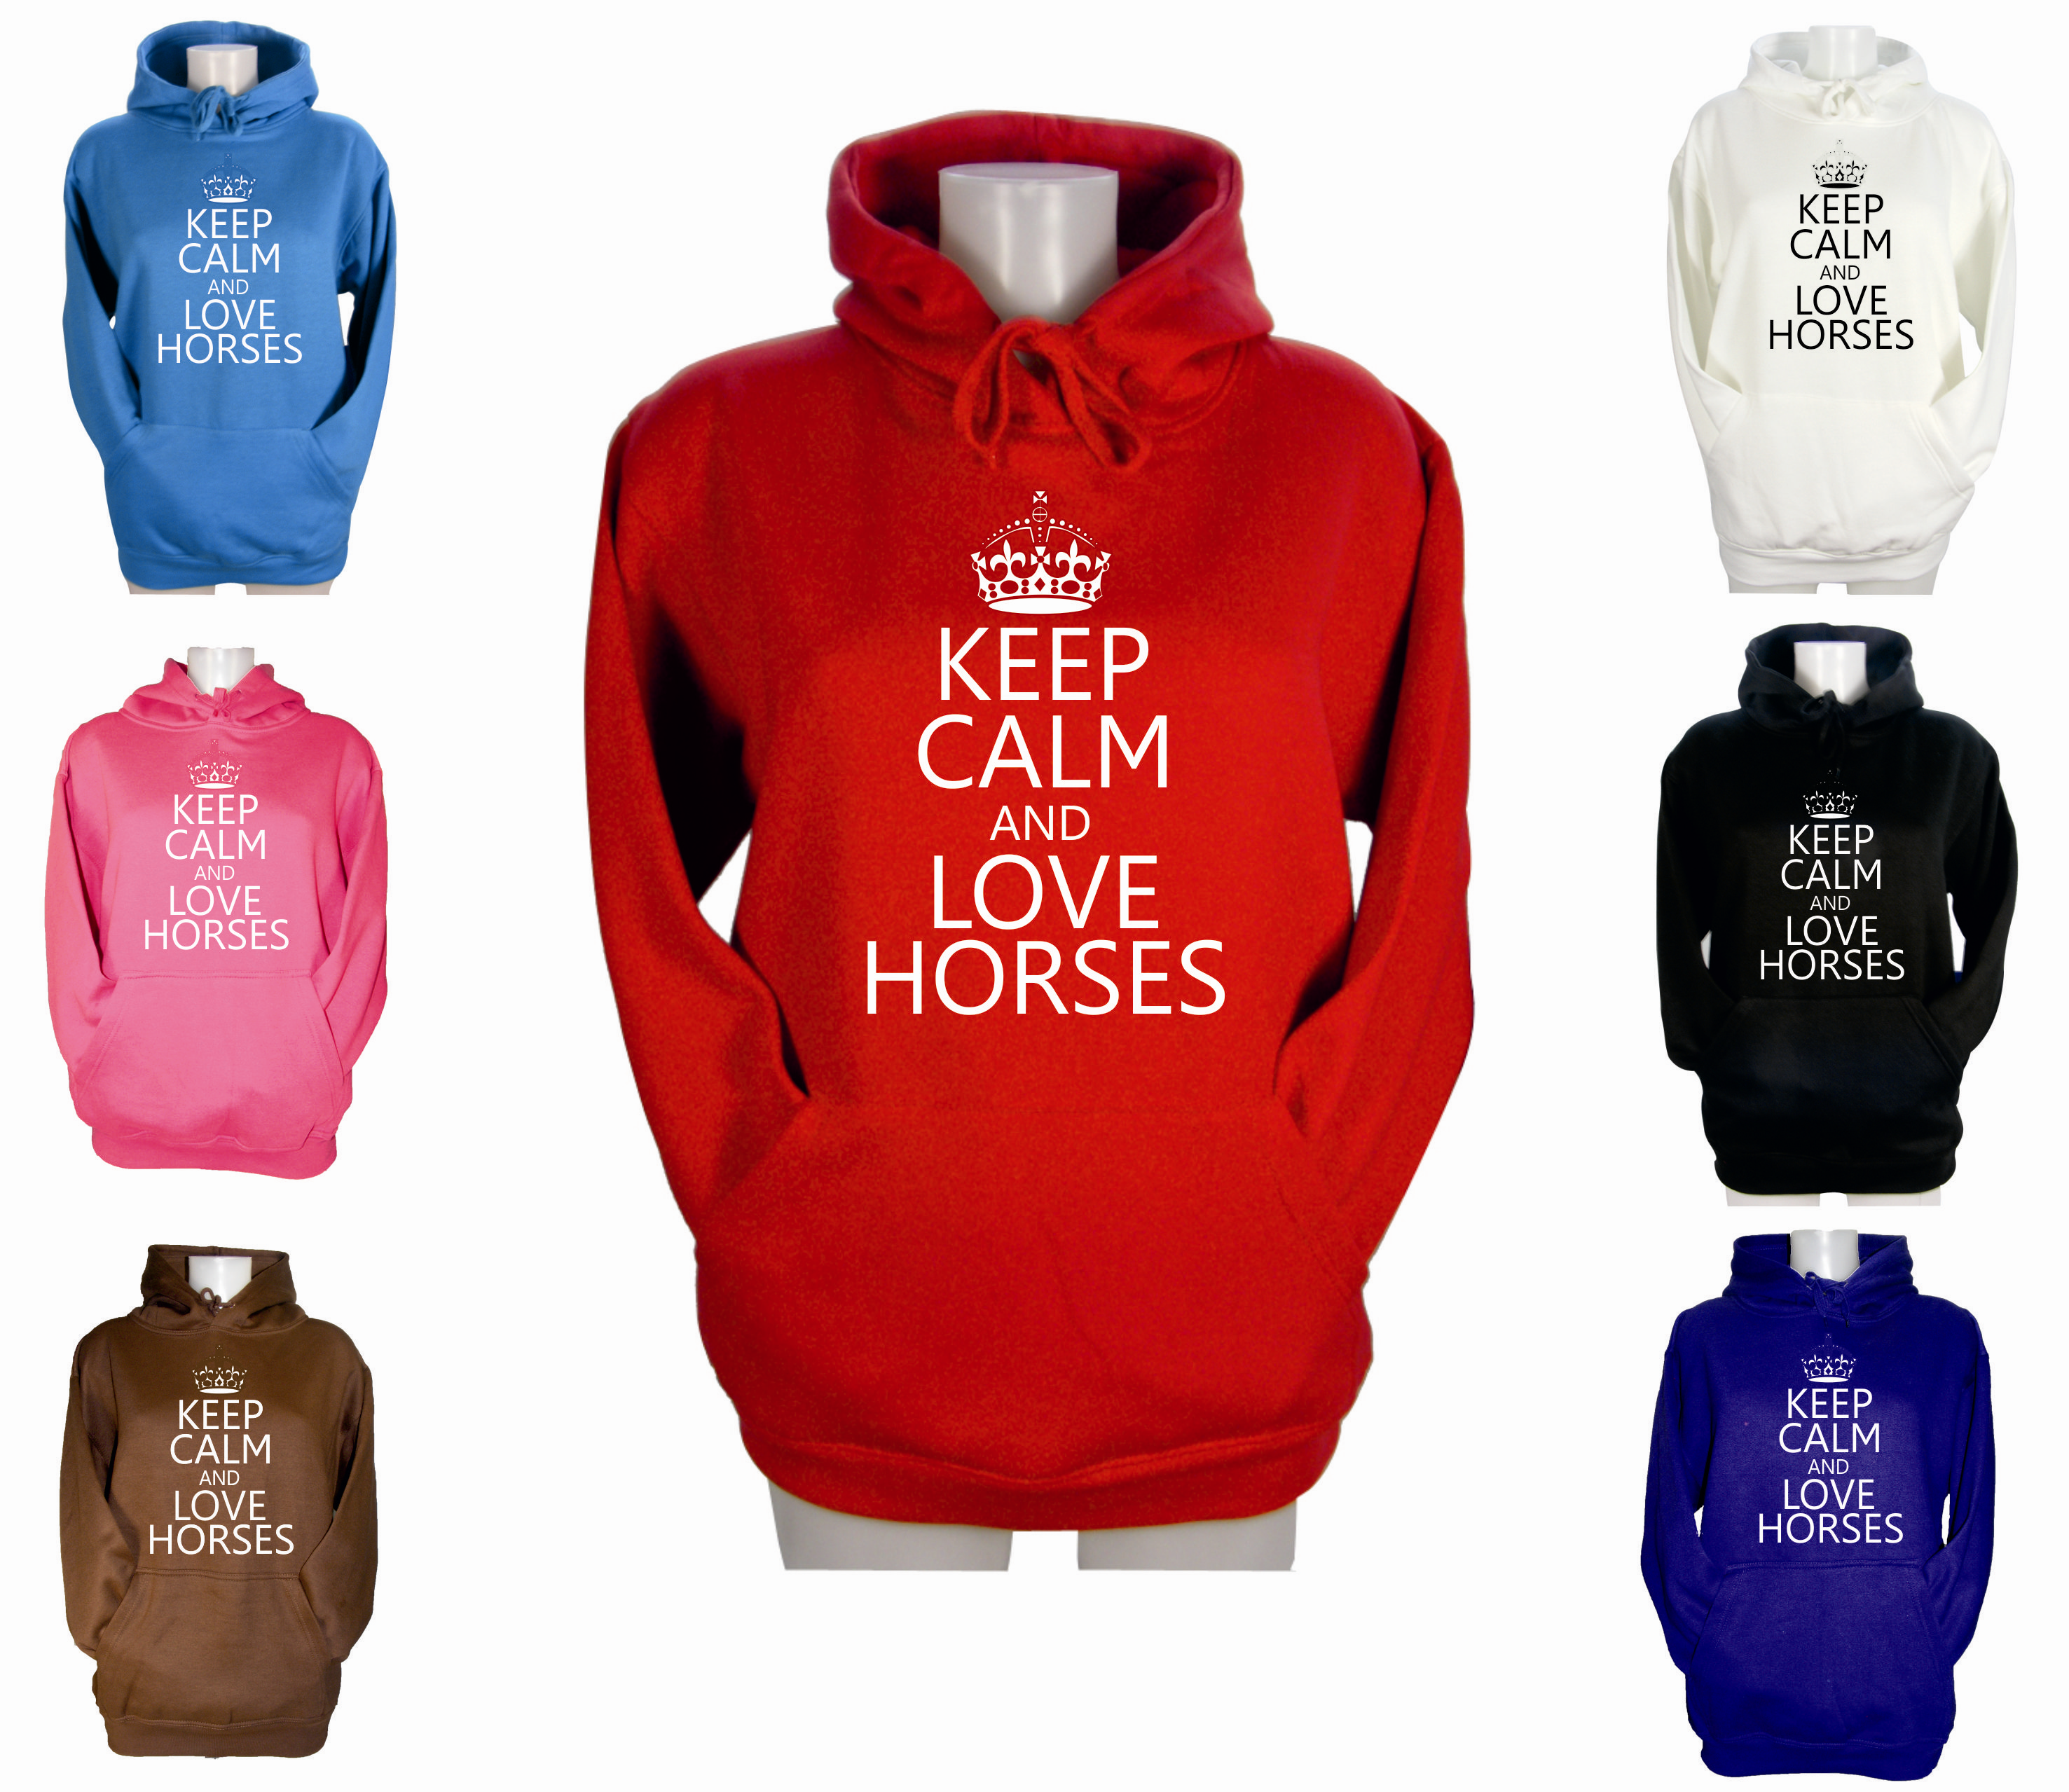 LADIES-KEEP-CALM-AND-LOVE-HORSES-HOODIE-GIRLS-PONY-RIDING-GIFT-HOODY-XS-S-M-L-XL